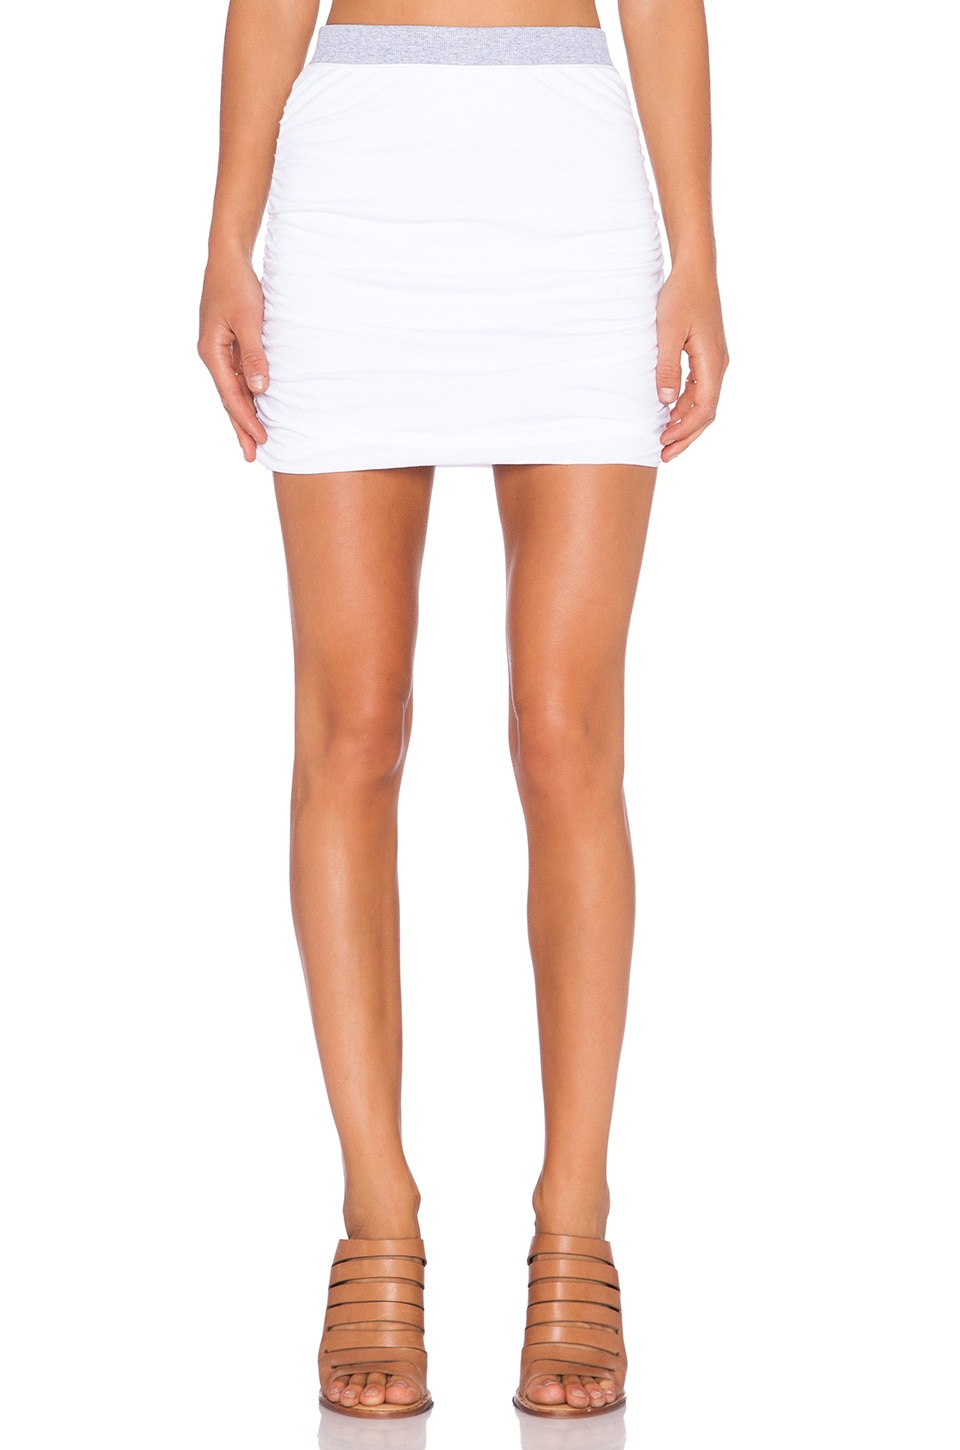 Splendid Rib Mix Mini Skirt in White